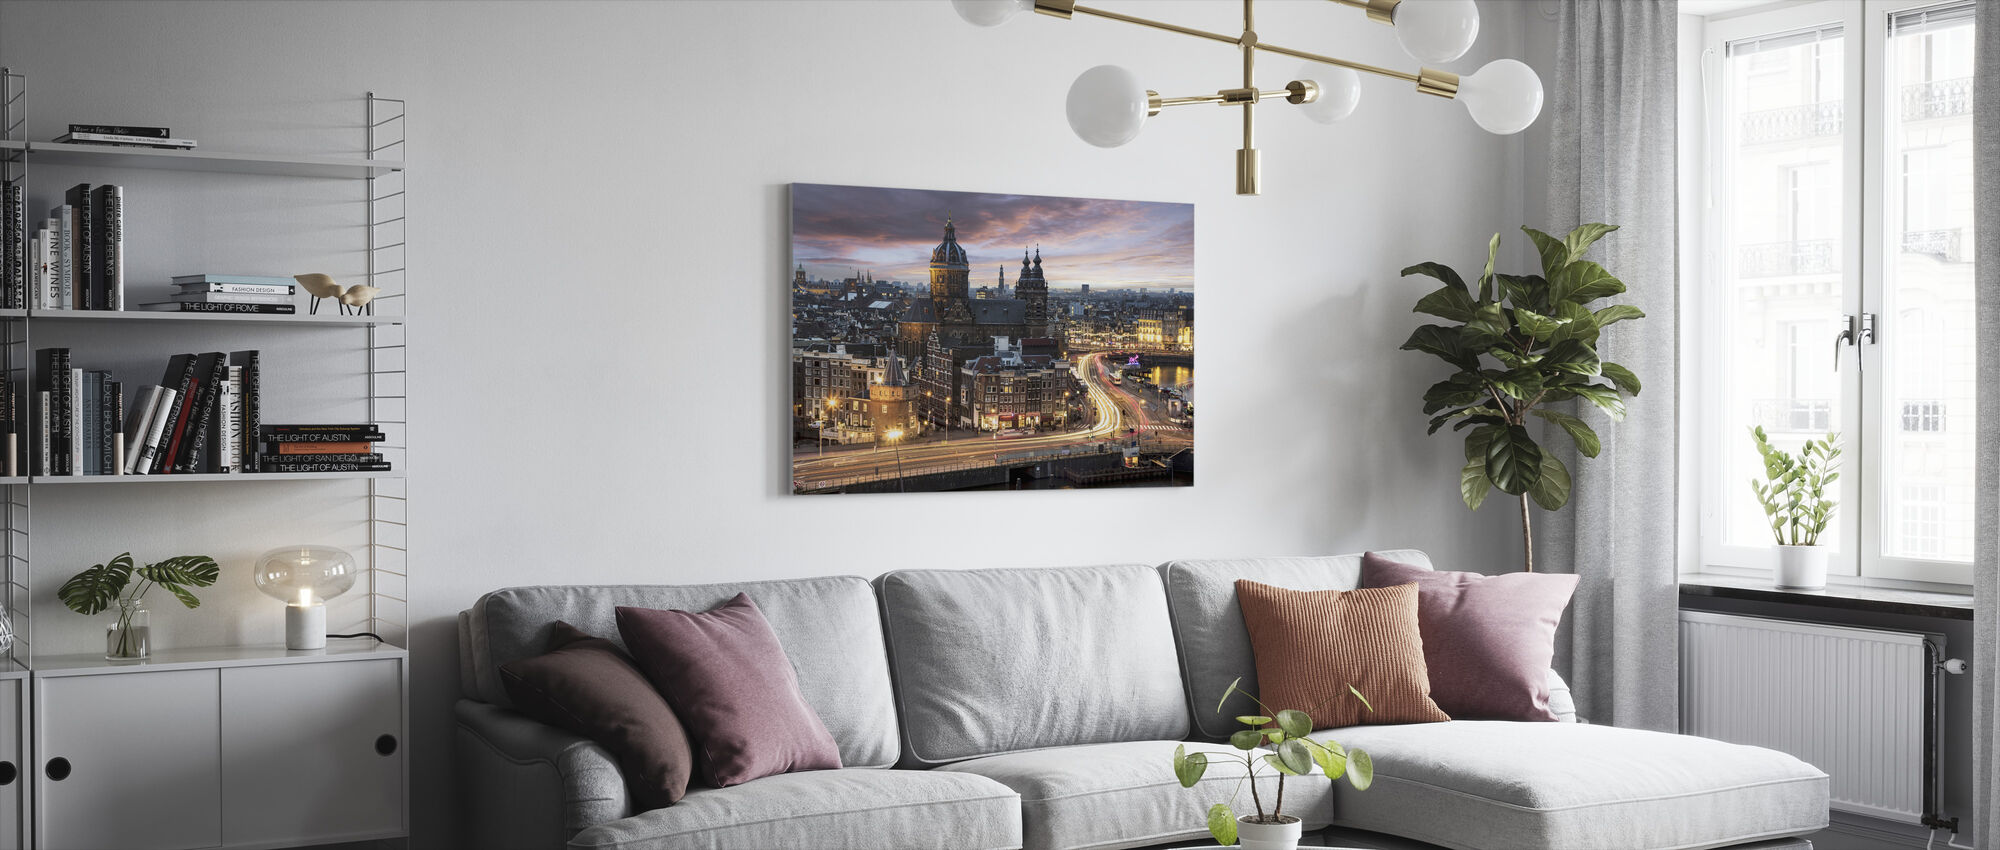 Basilica Saint Nicolas Church in Amsterdam - Canvas print - Living Room